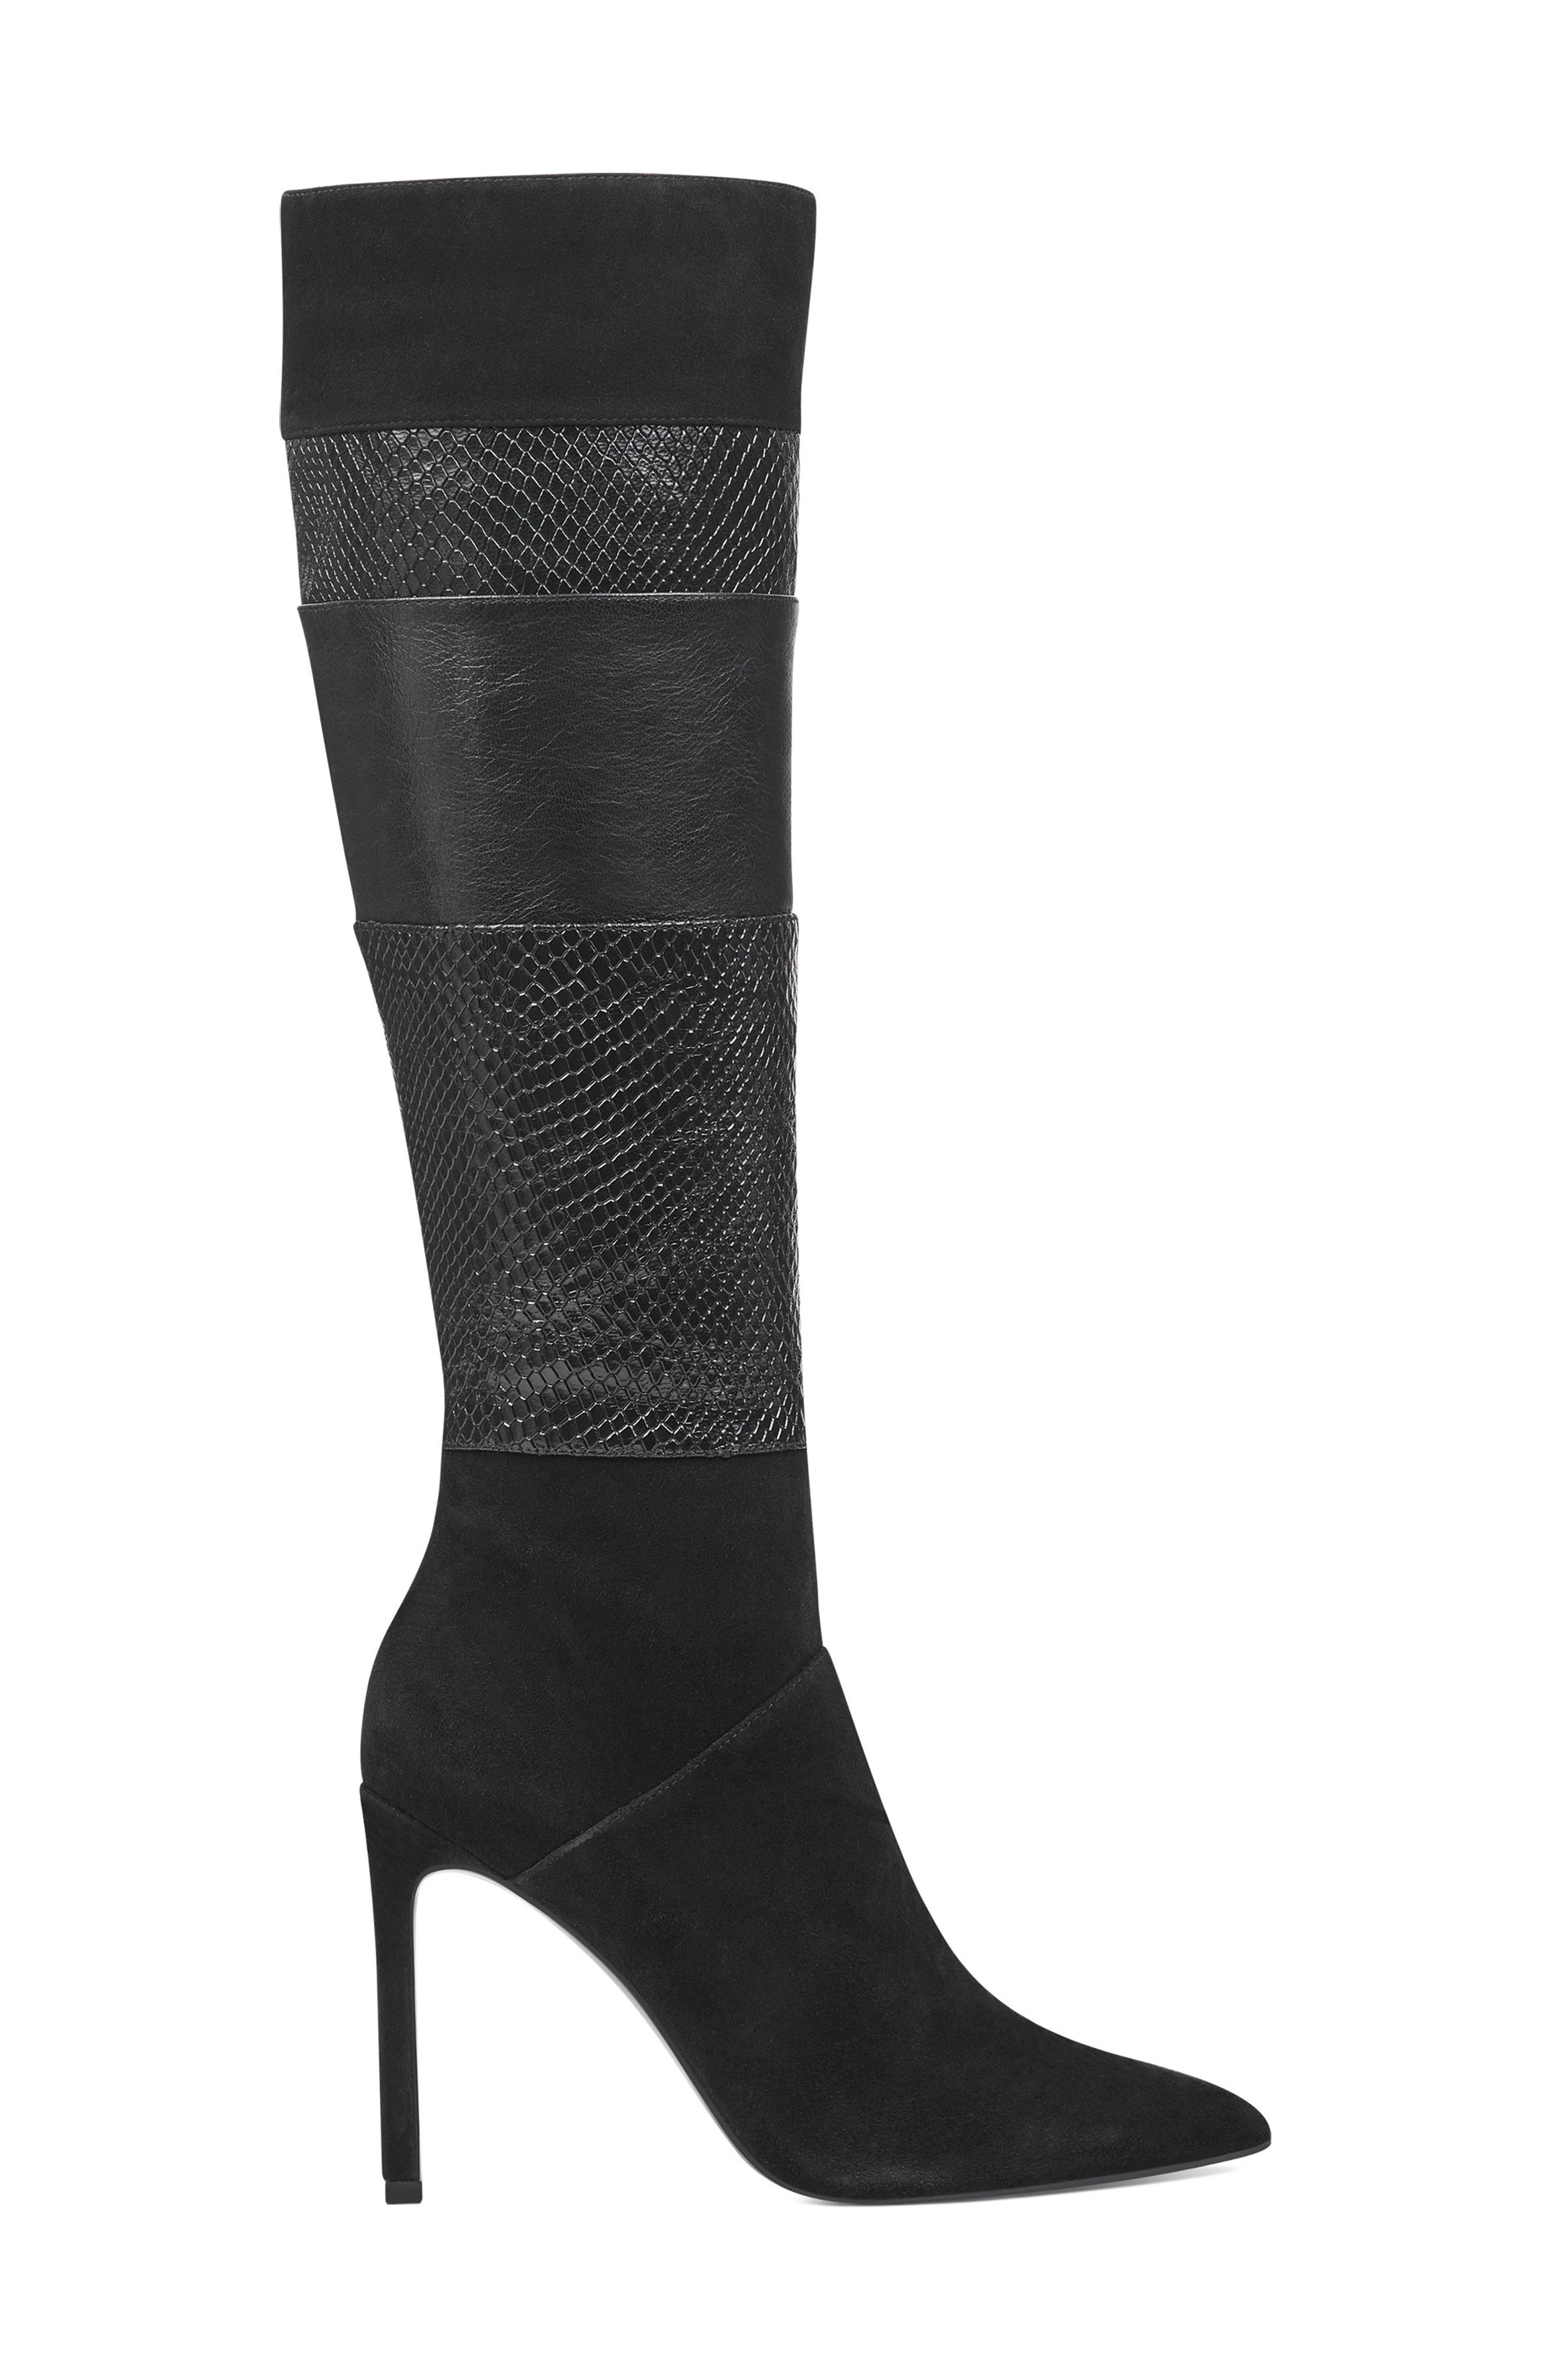 Toprank Blocked Knee High Boot,                             Alternate thumbnail 3, color,                             BLACK SUEDE